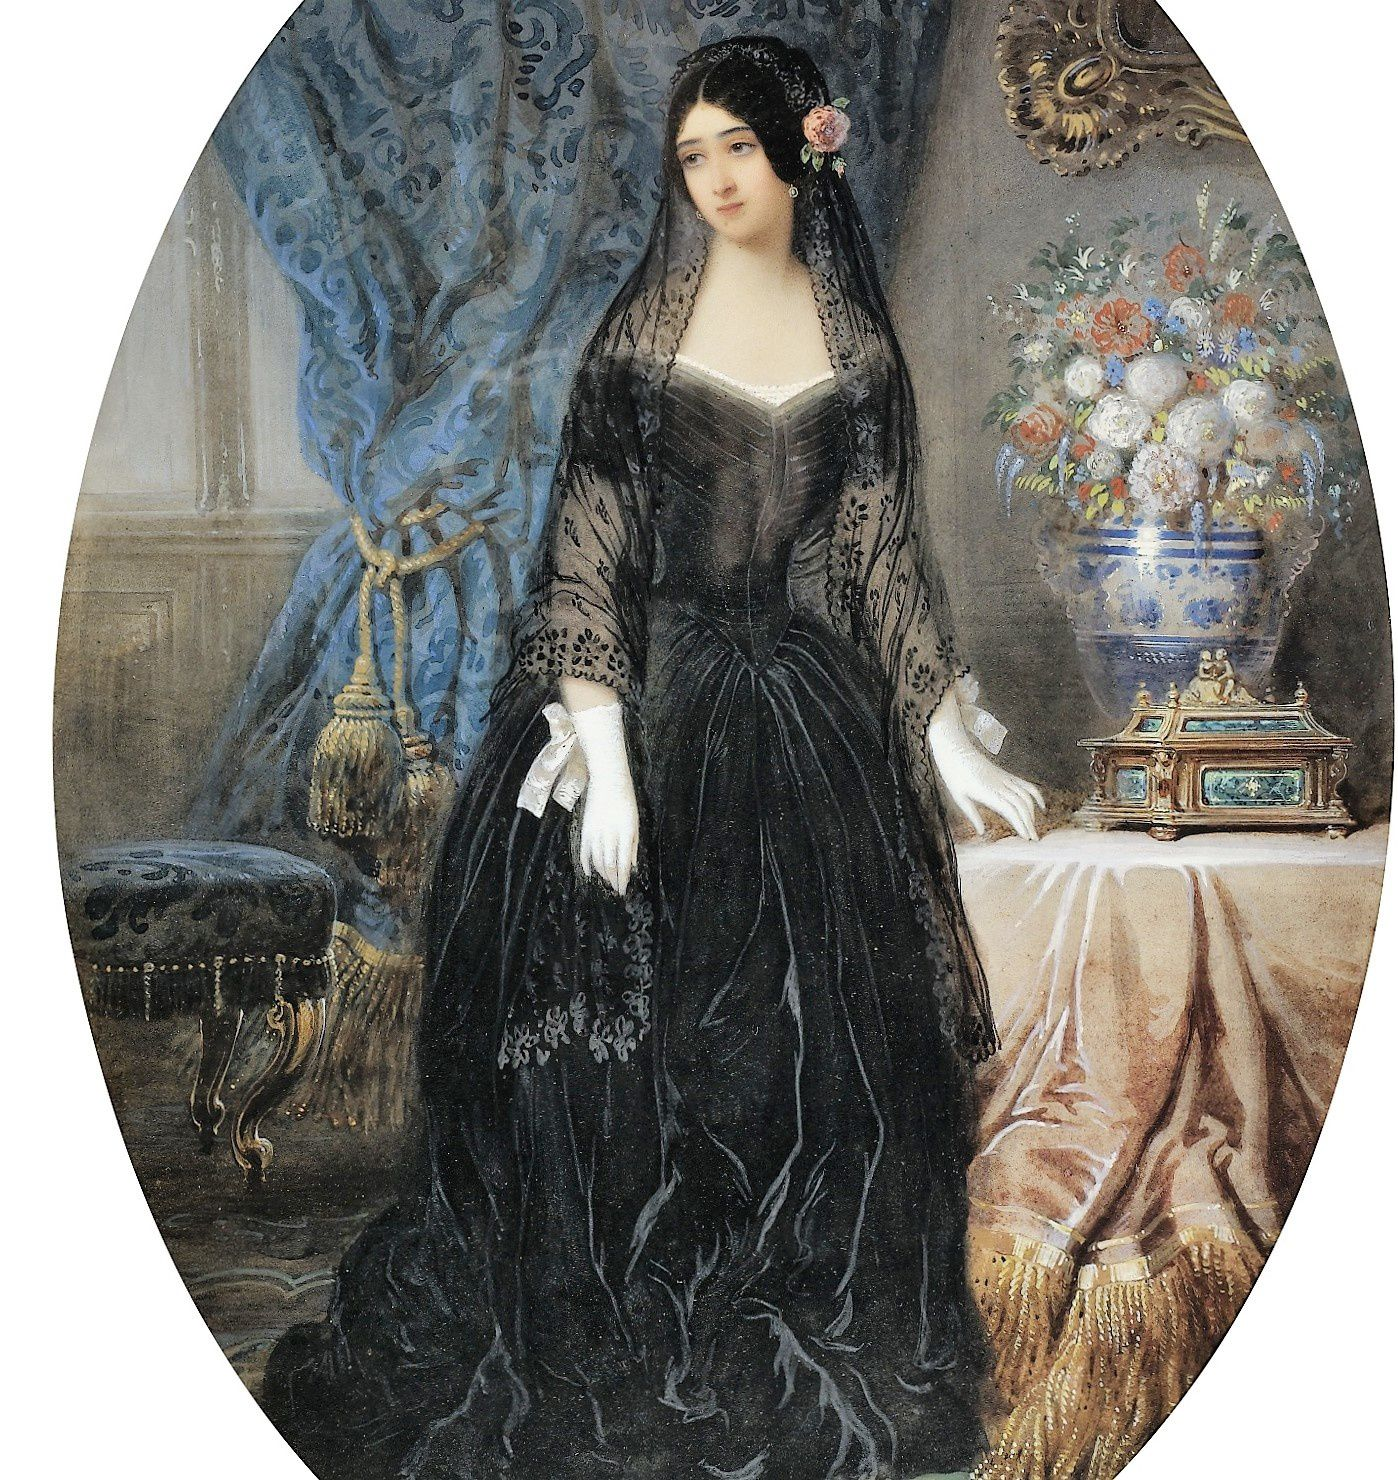 Marie Duplessis. Jean Charles Olivier (1840)